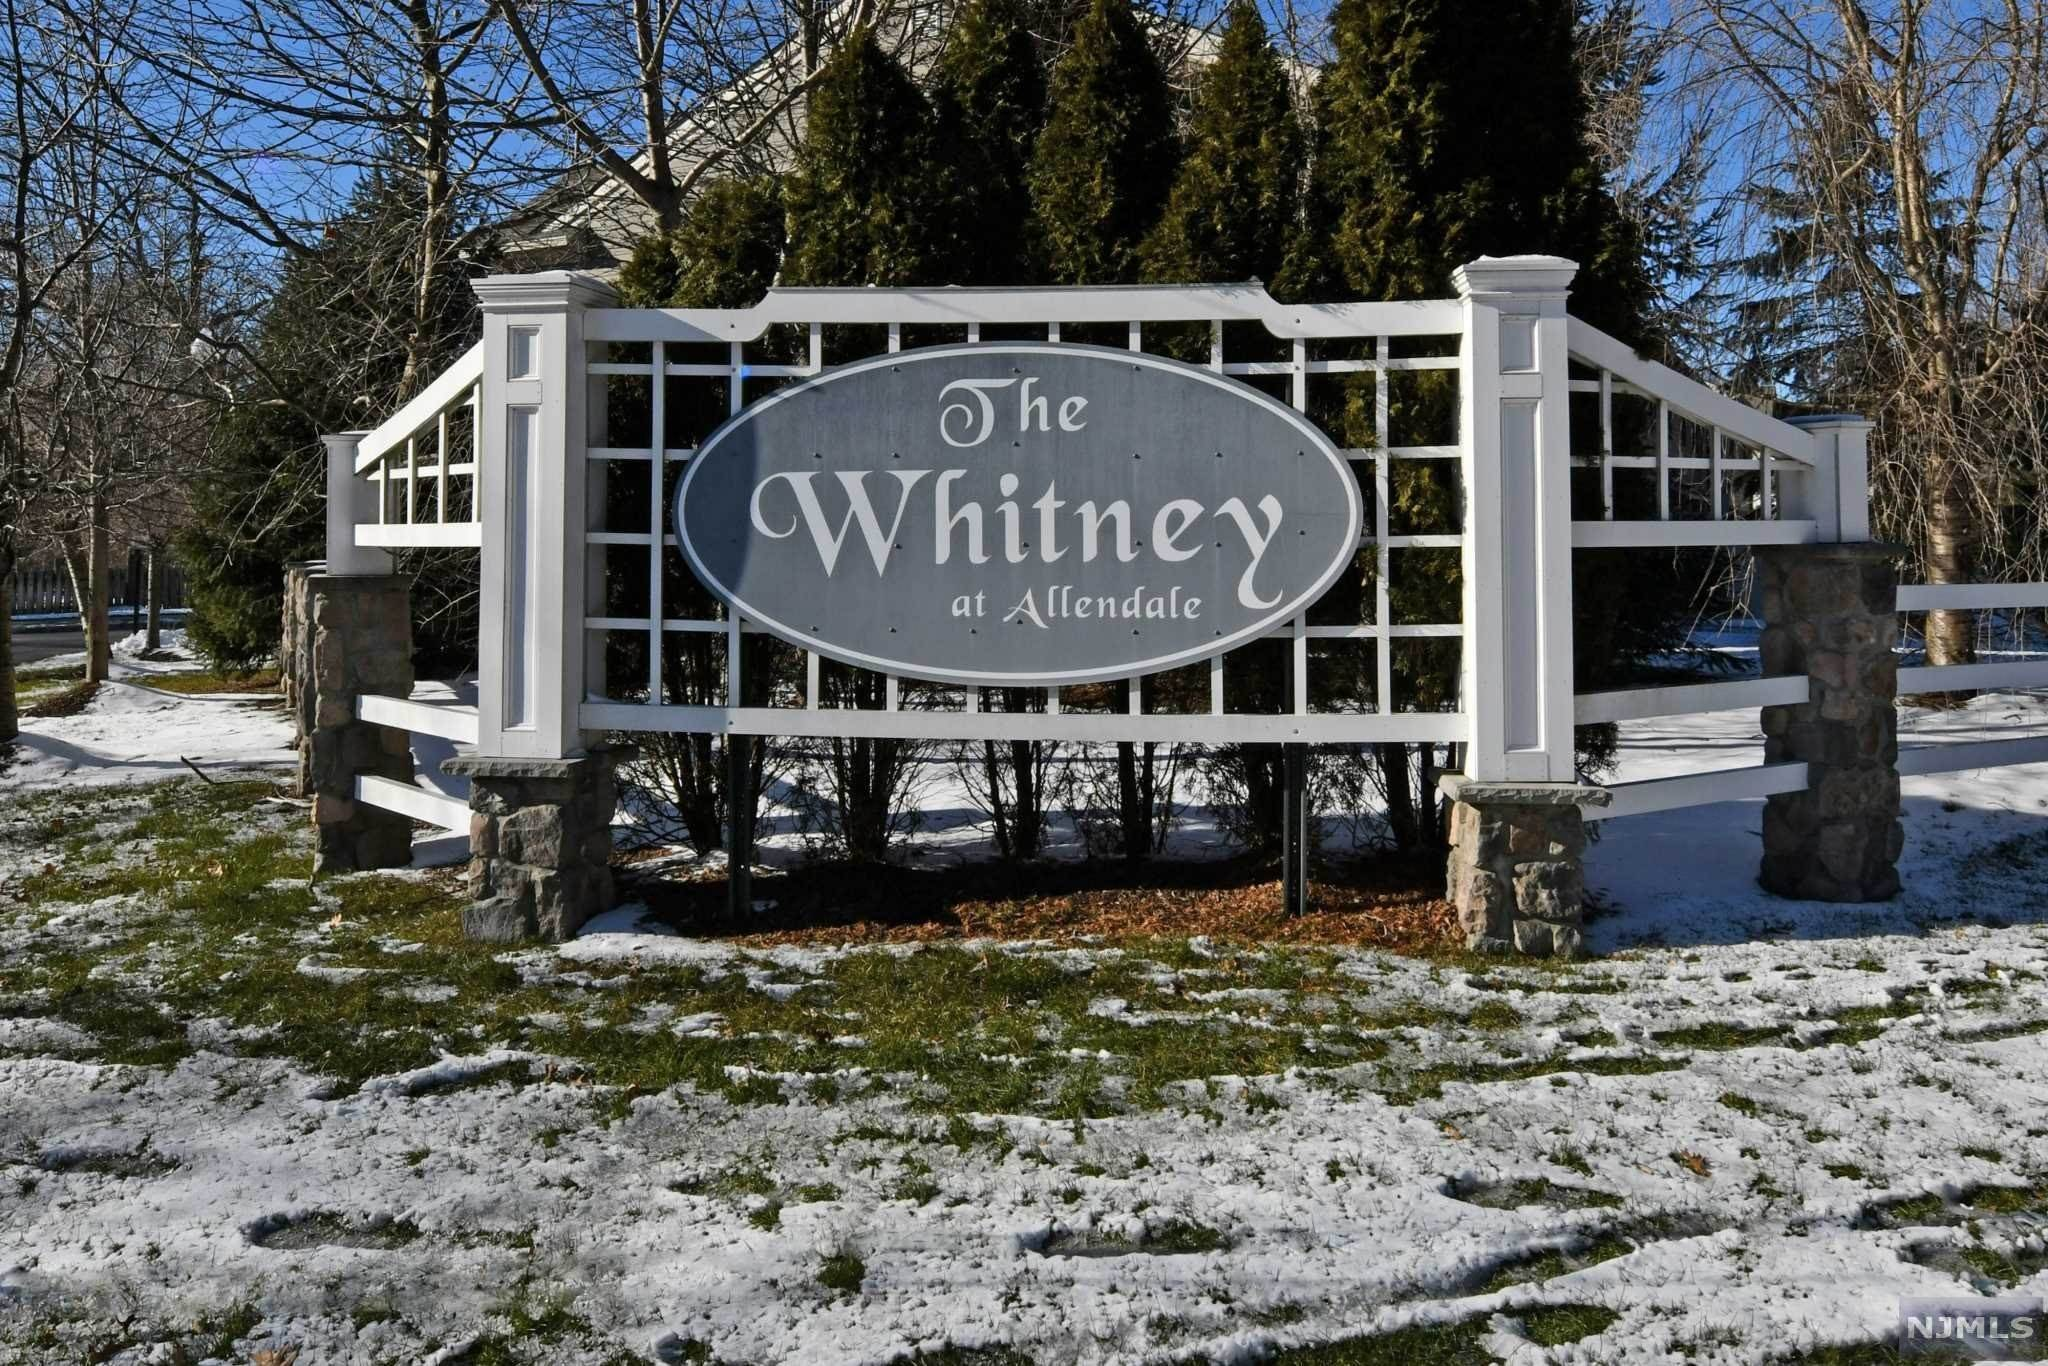 Condominium for Sale at 606 Whitney Lane Allendale, New Jersey, 07401 United States